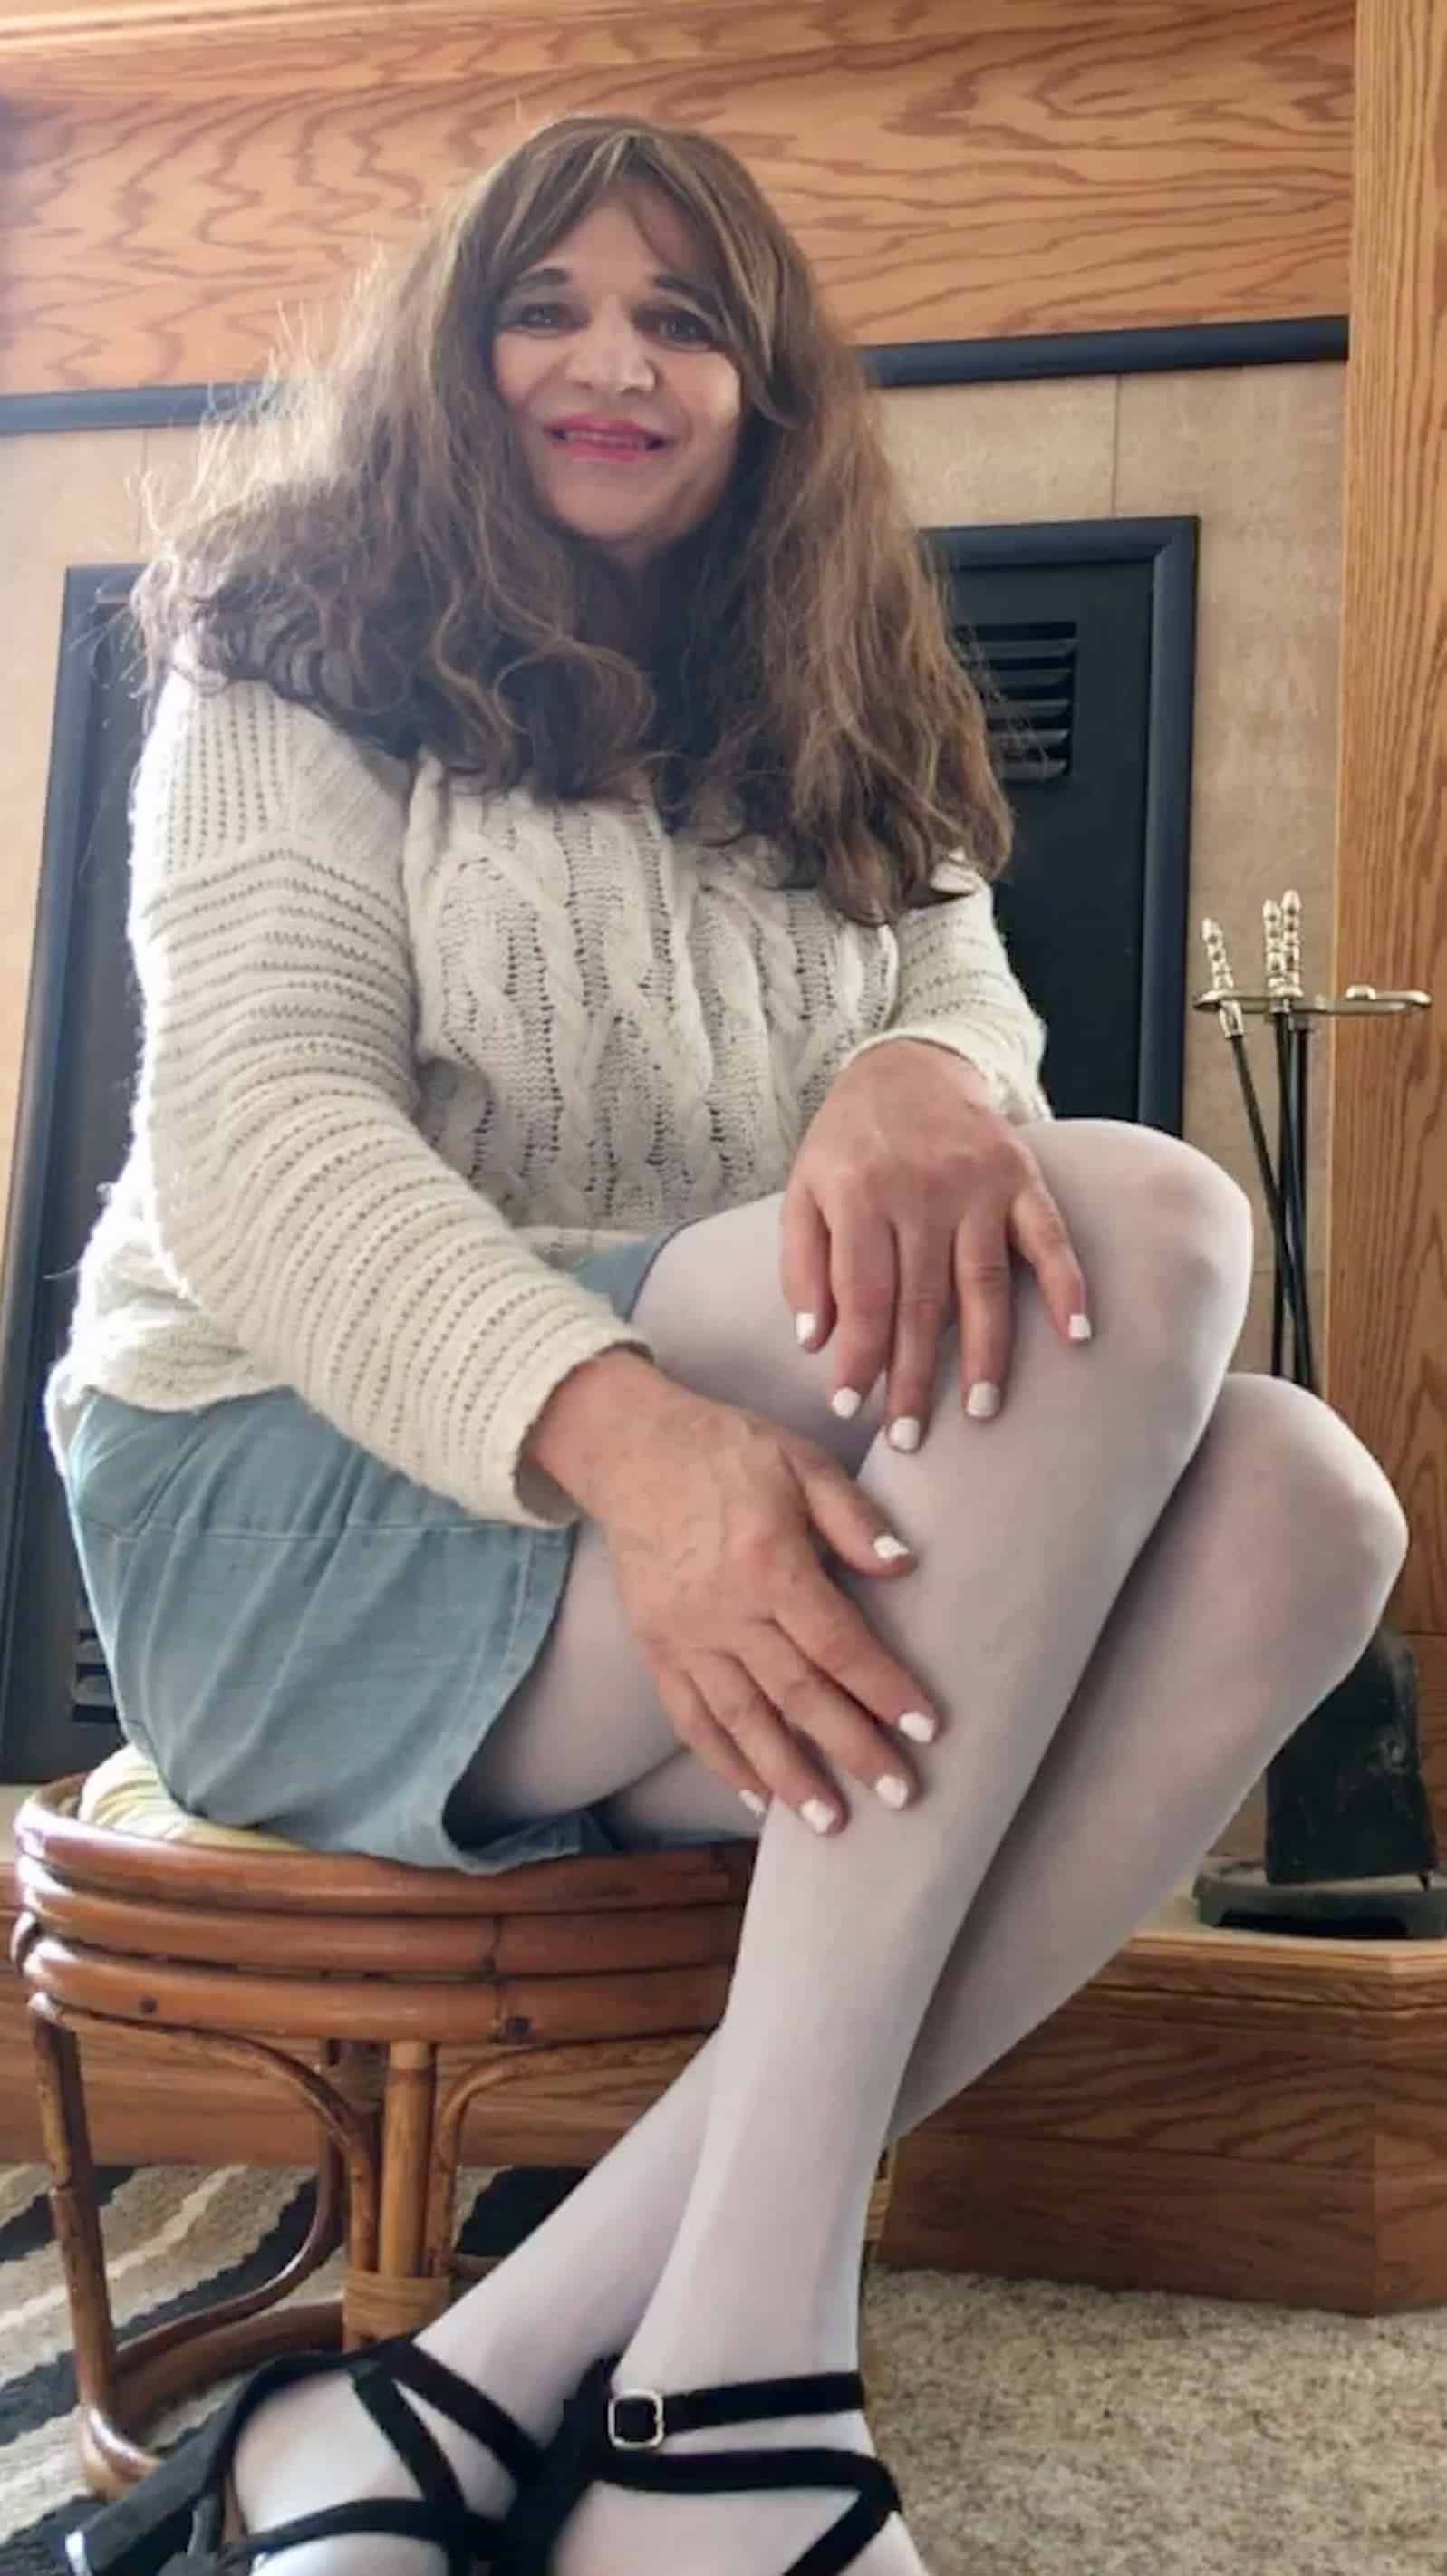 Blue tights and a blue jean skirt